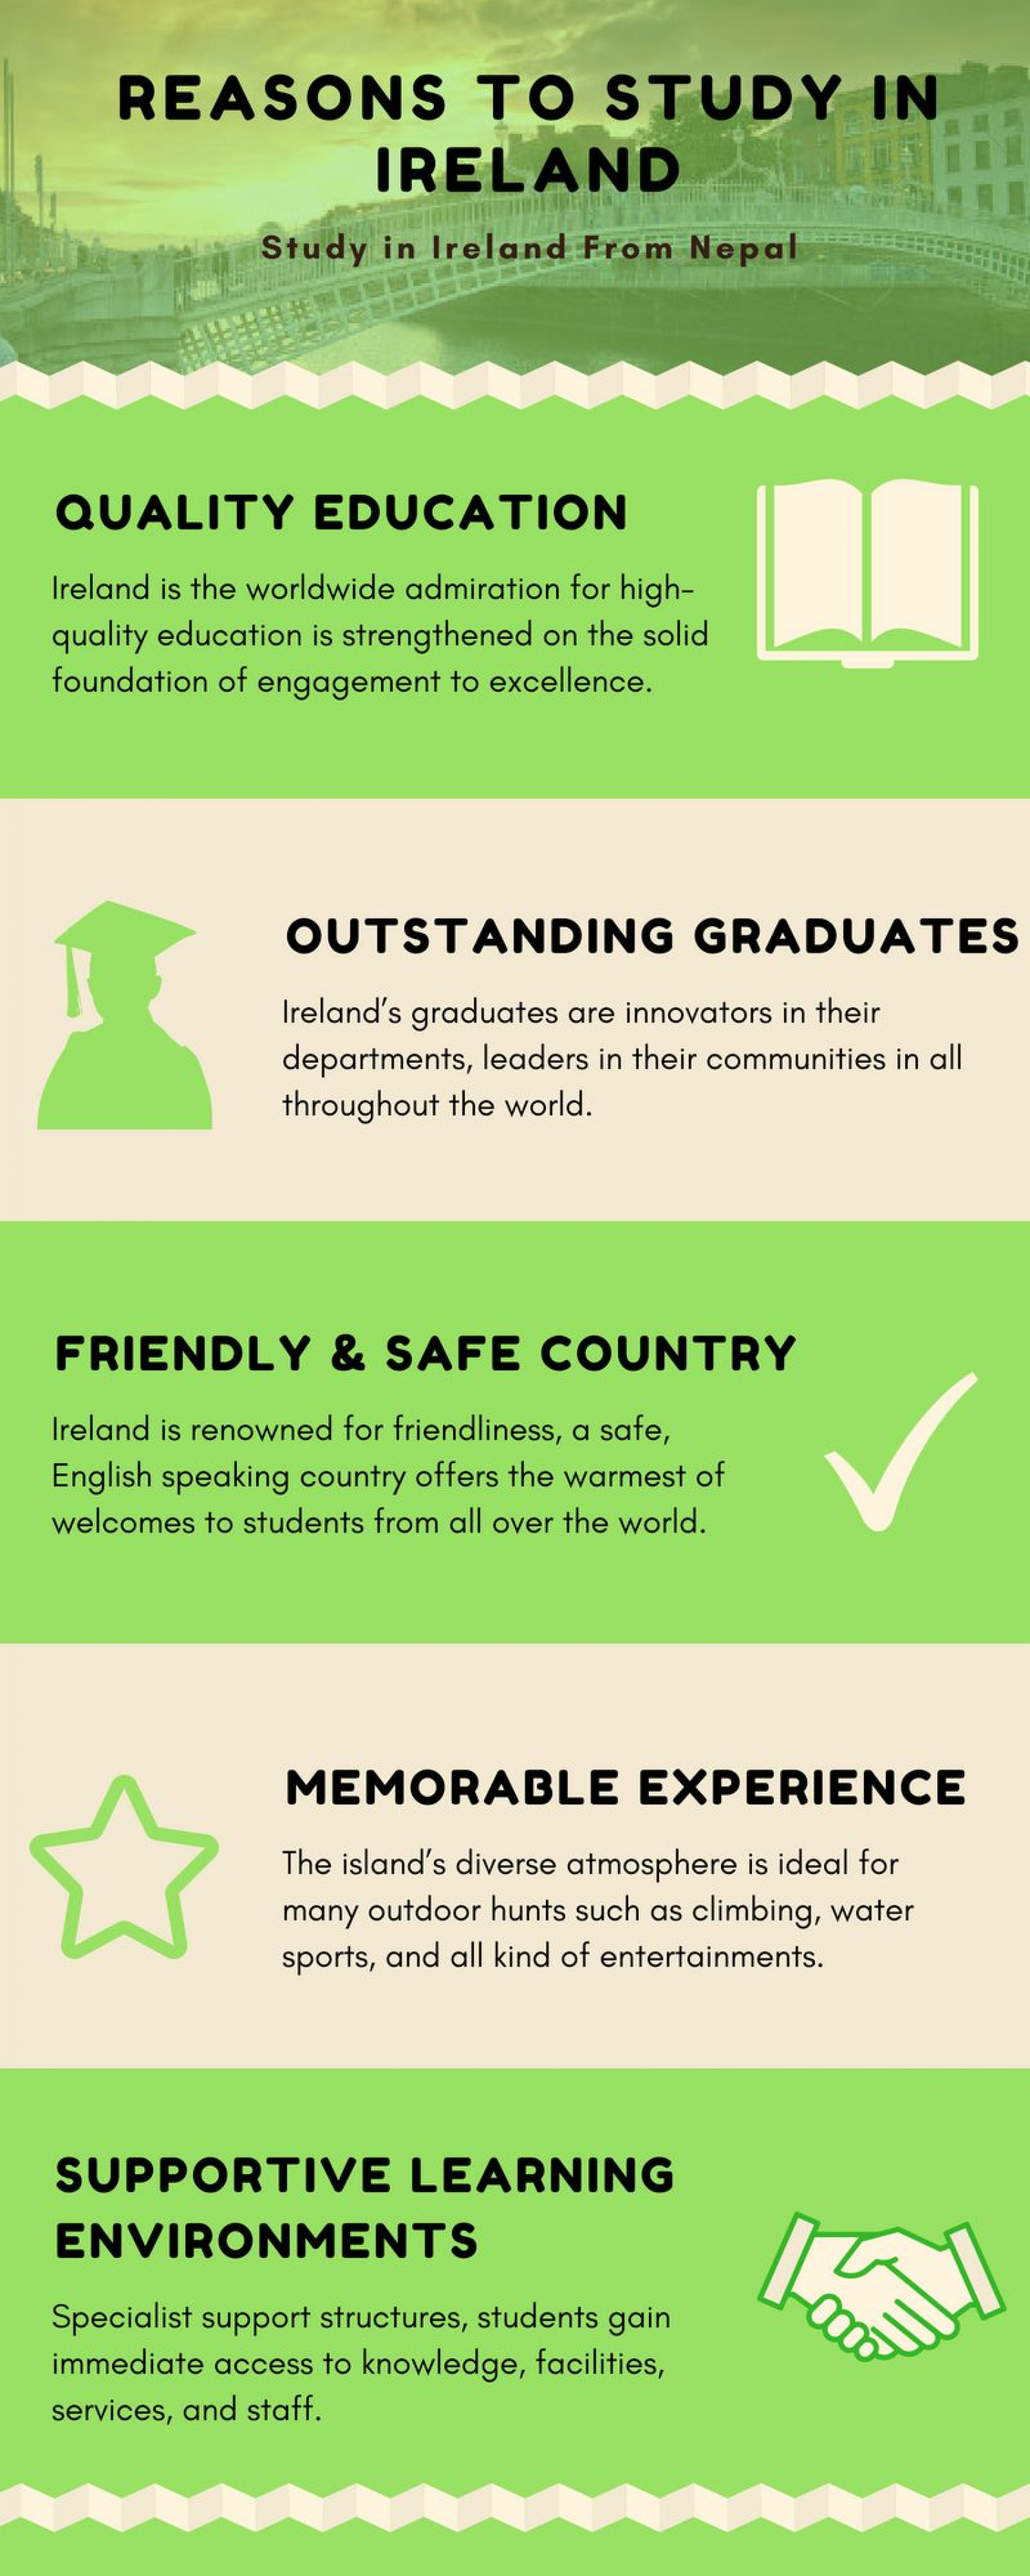 Reasons to Study in Ireland Infographic